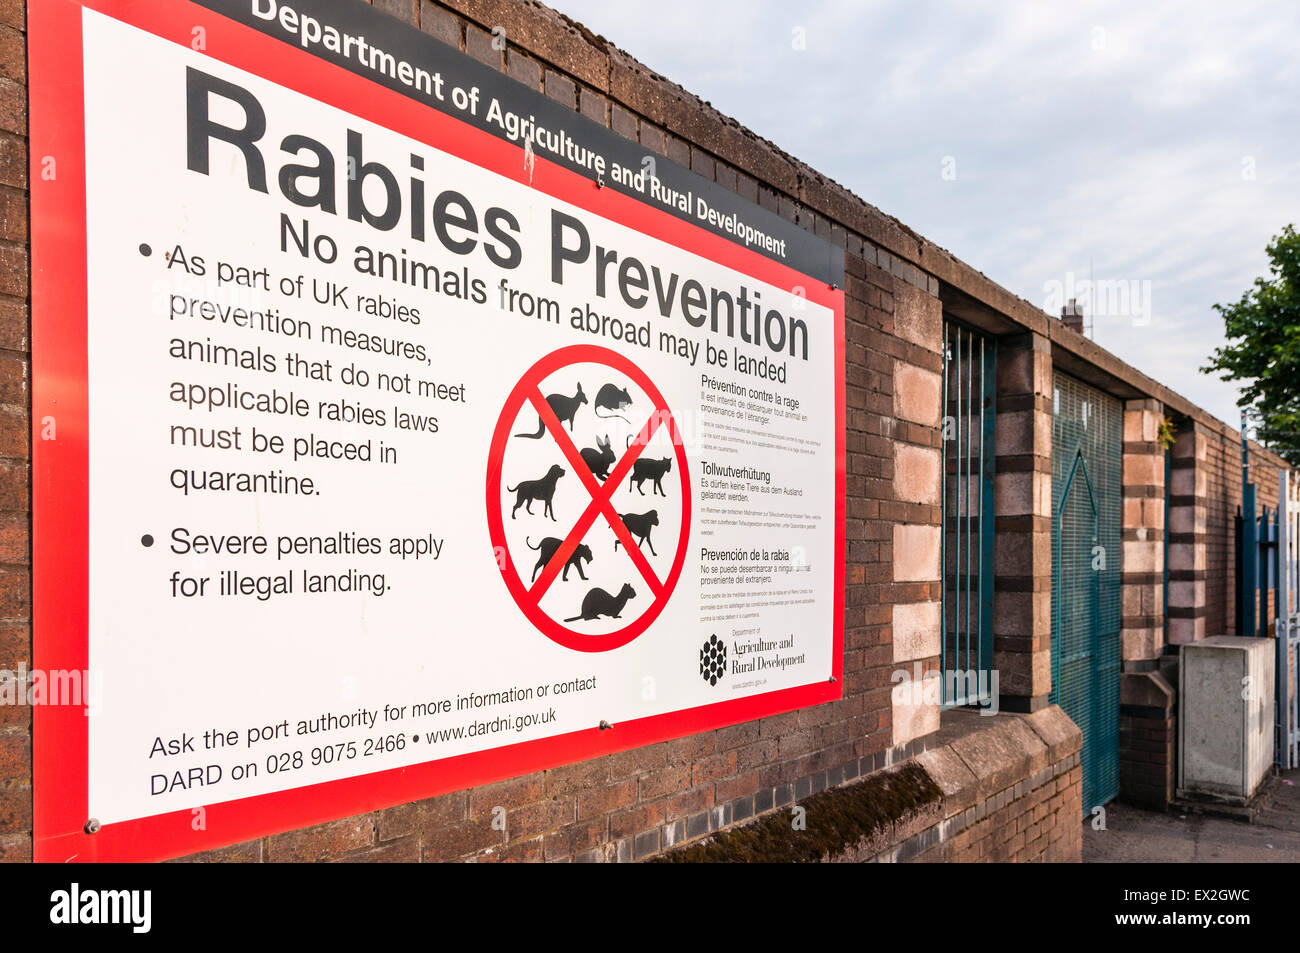 Sign warning people not to bring animals into the UK to prevent rabies - Stock Image